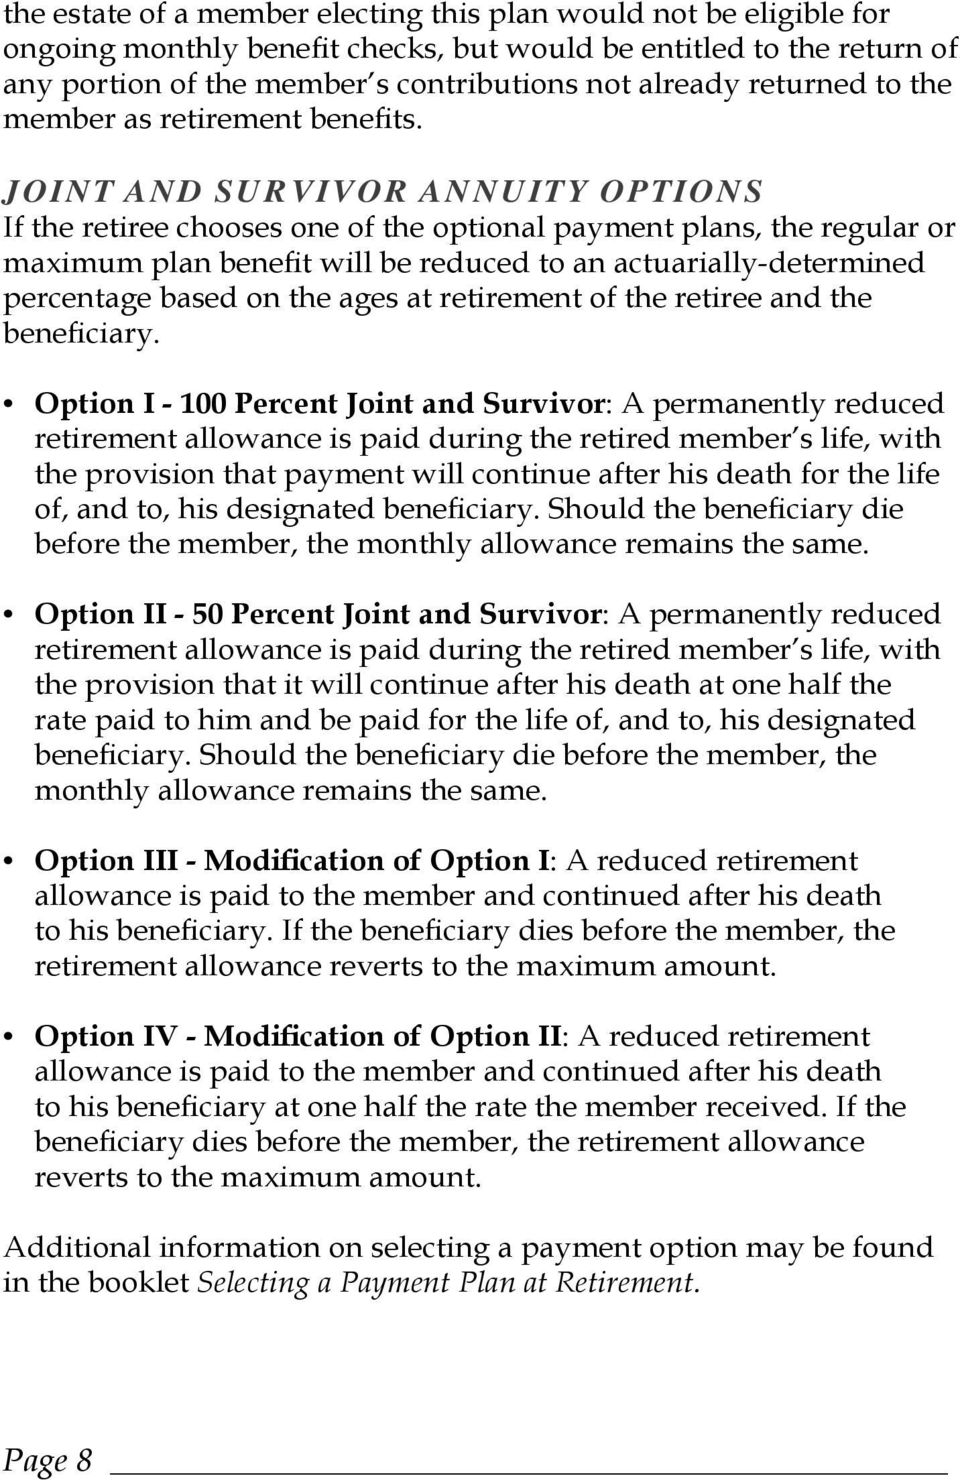 JOINT AND SURVIVOR ANNUITY OPTIONS If the retiree chooses one of the optional payment plans, the regular or maximum plan benefit will be reduced to an actuarially-determined percentage based on the